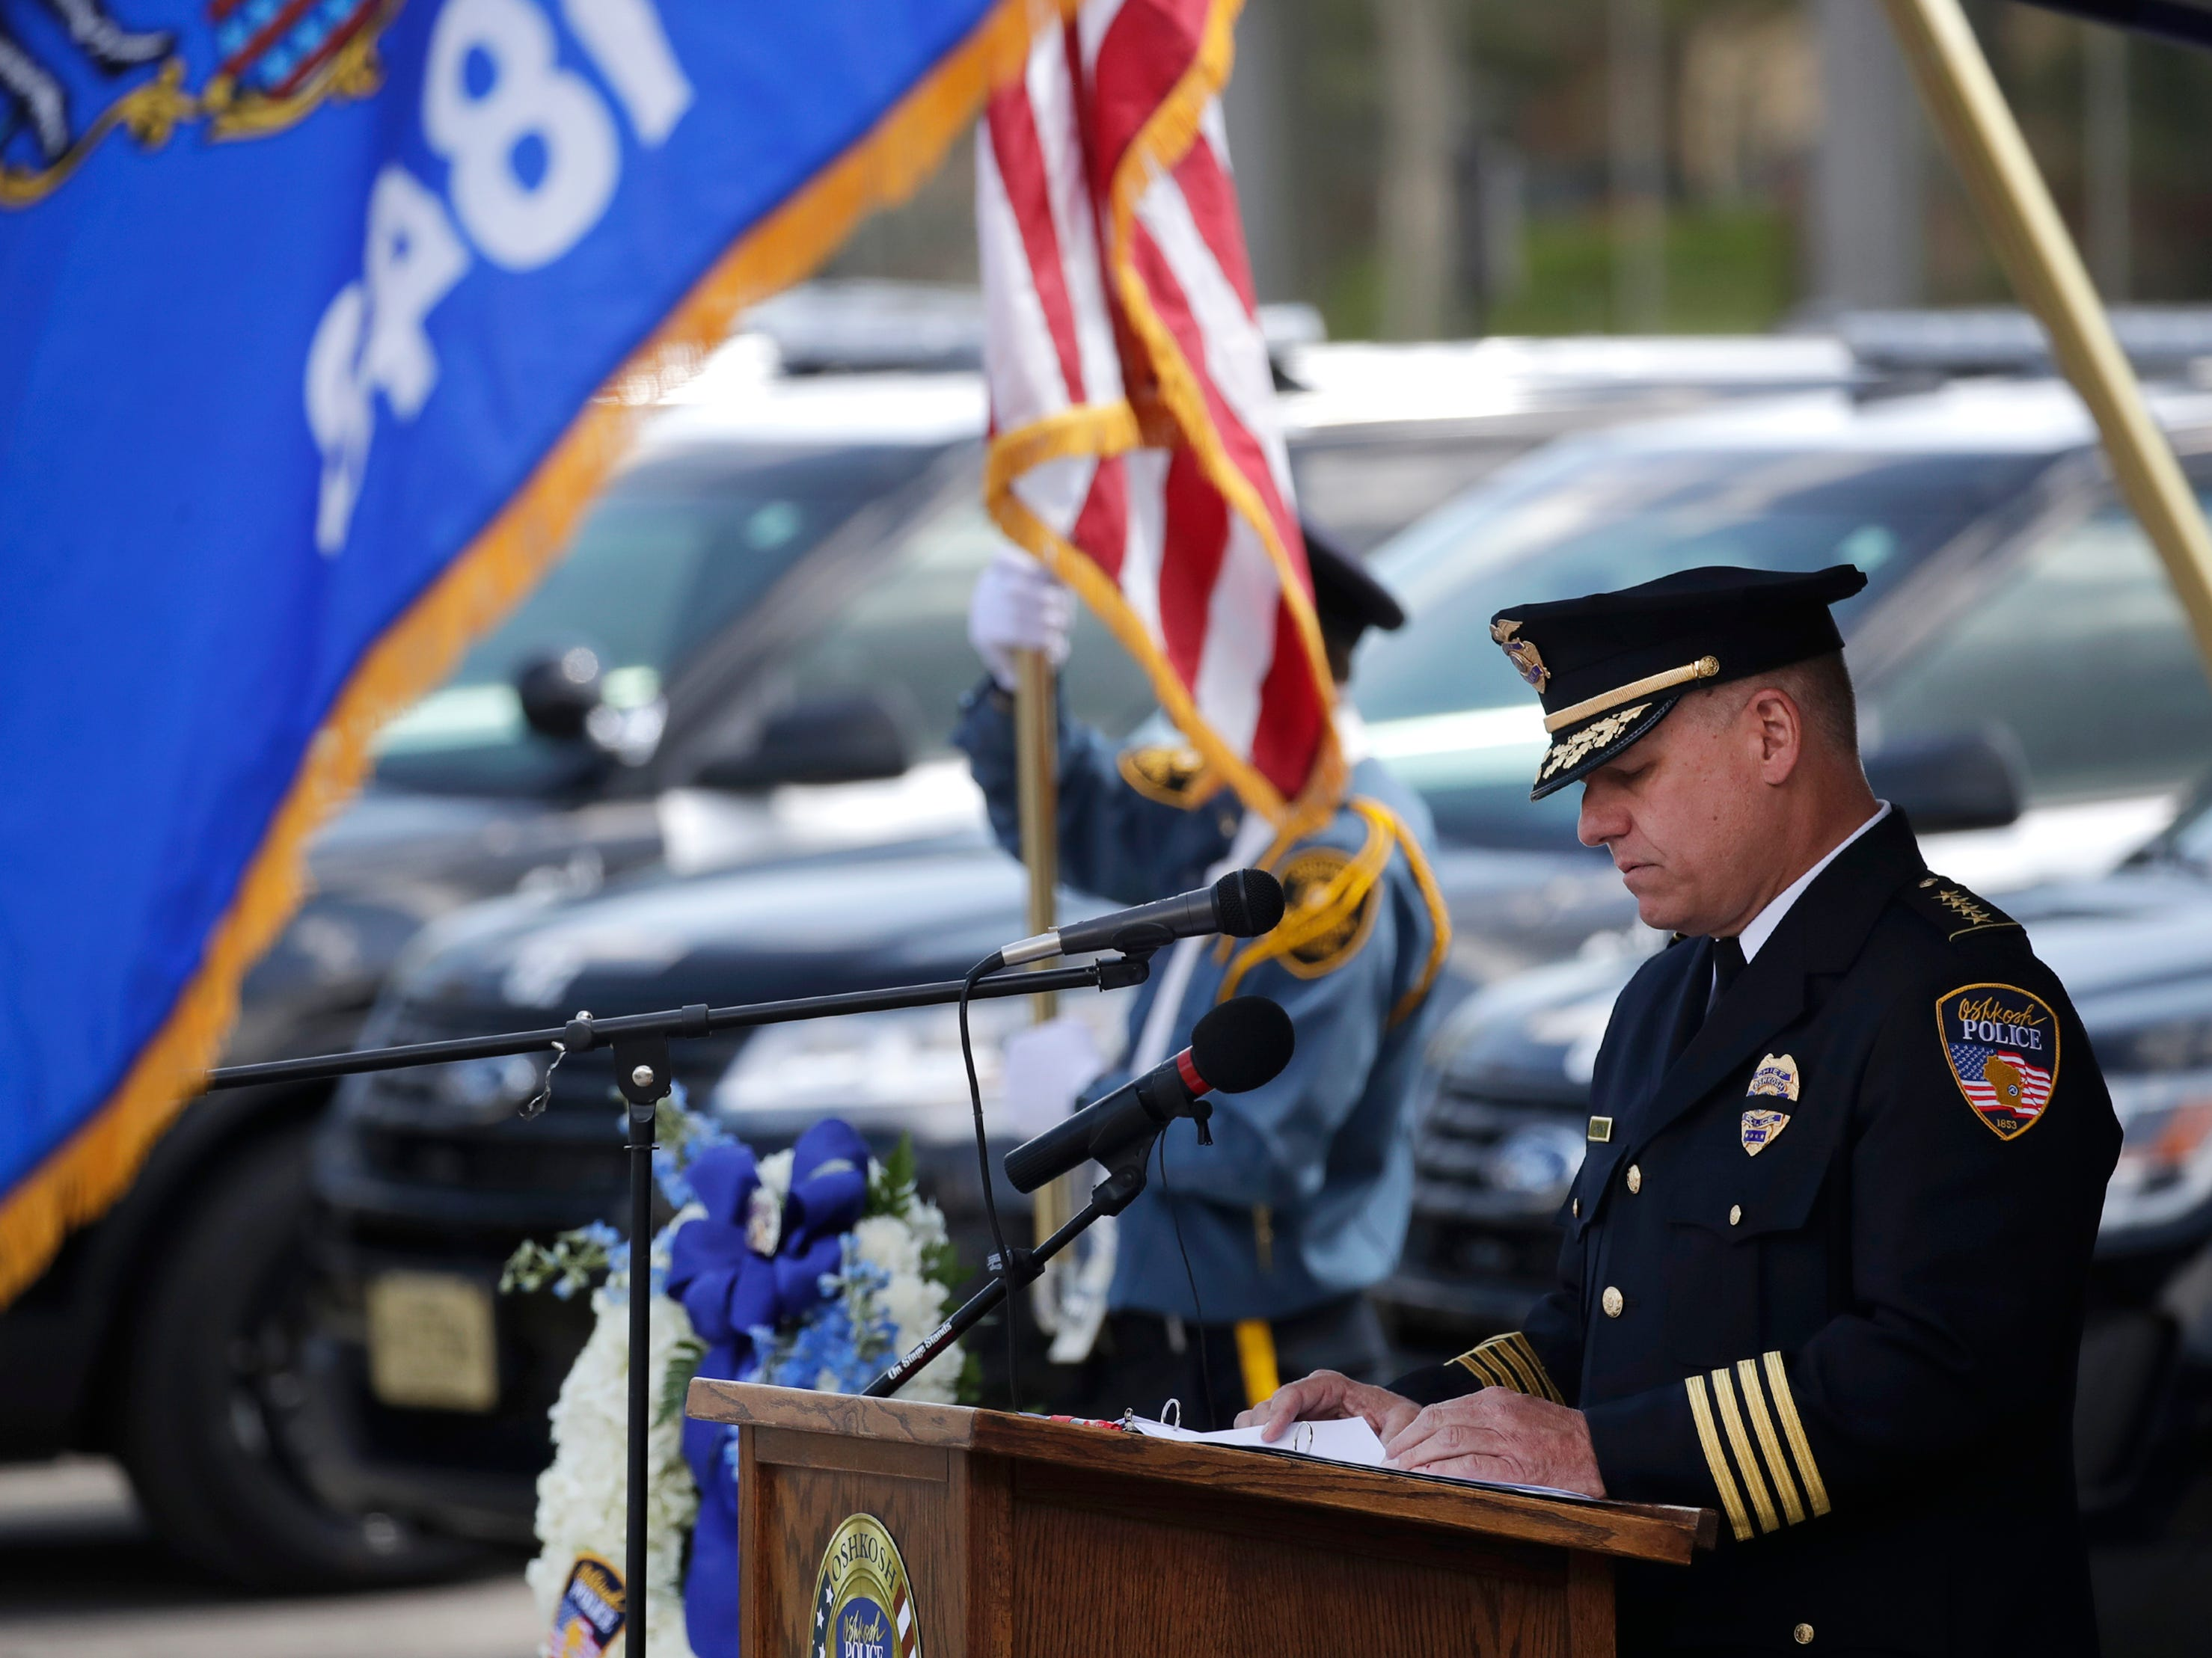 Oshkosh police chief Dean Smith speaks during their Law Enforcement Memorial Ceremony Wednesday, May 15, 2019, at the Oshkosh Police Department in Oshkosh, Wis. Danny Damiani/USA TODAY NETWORK-Wisconsin